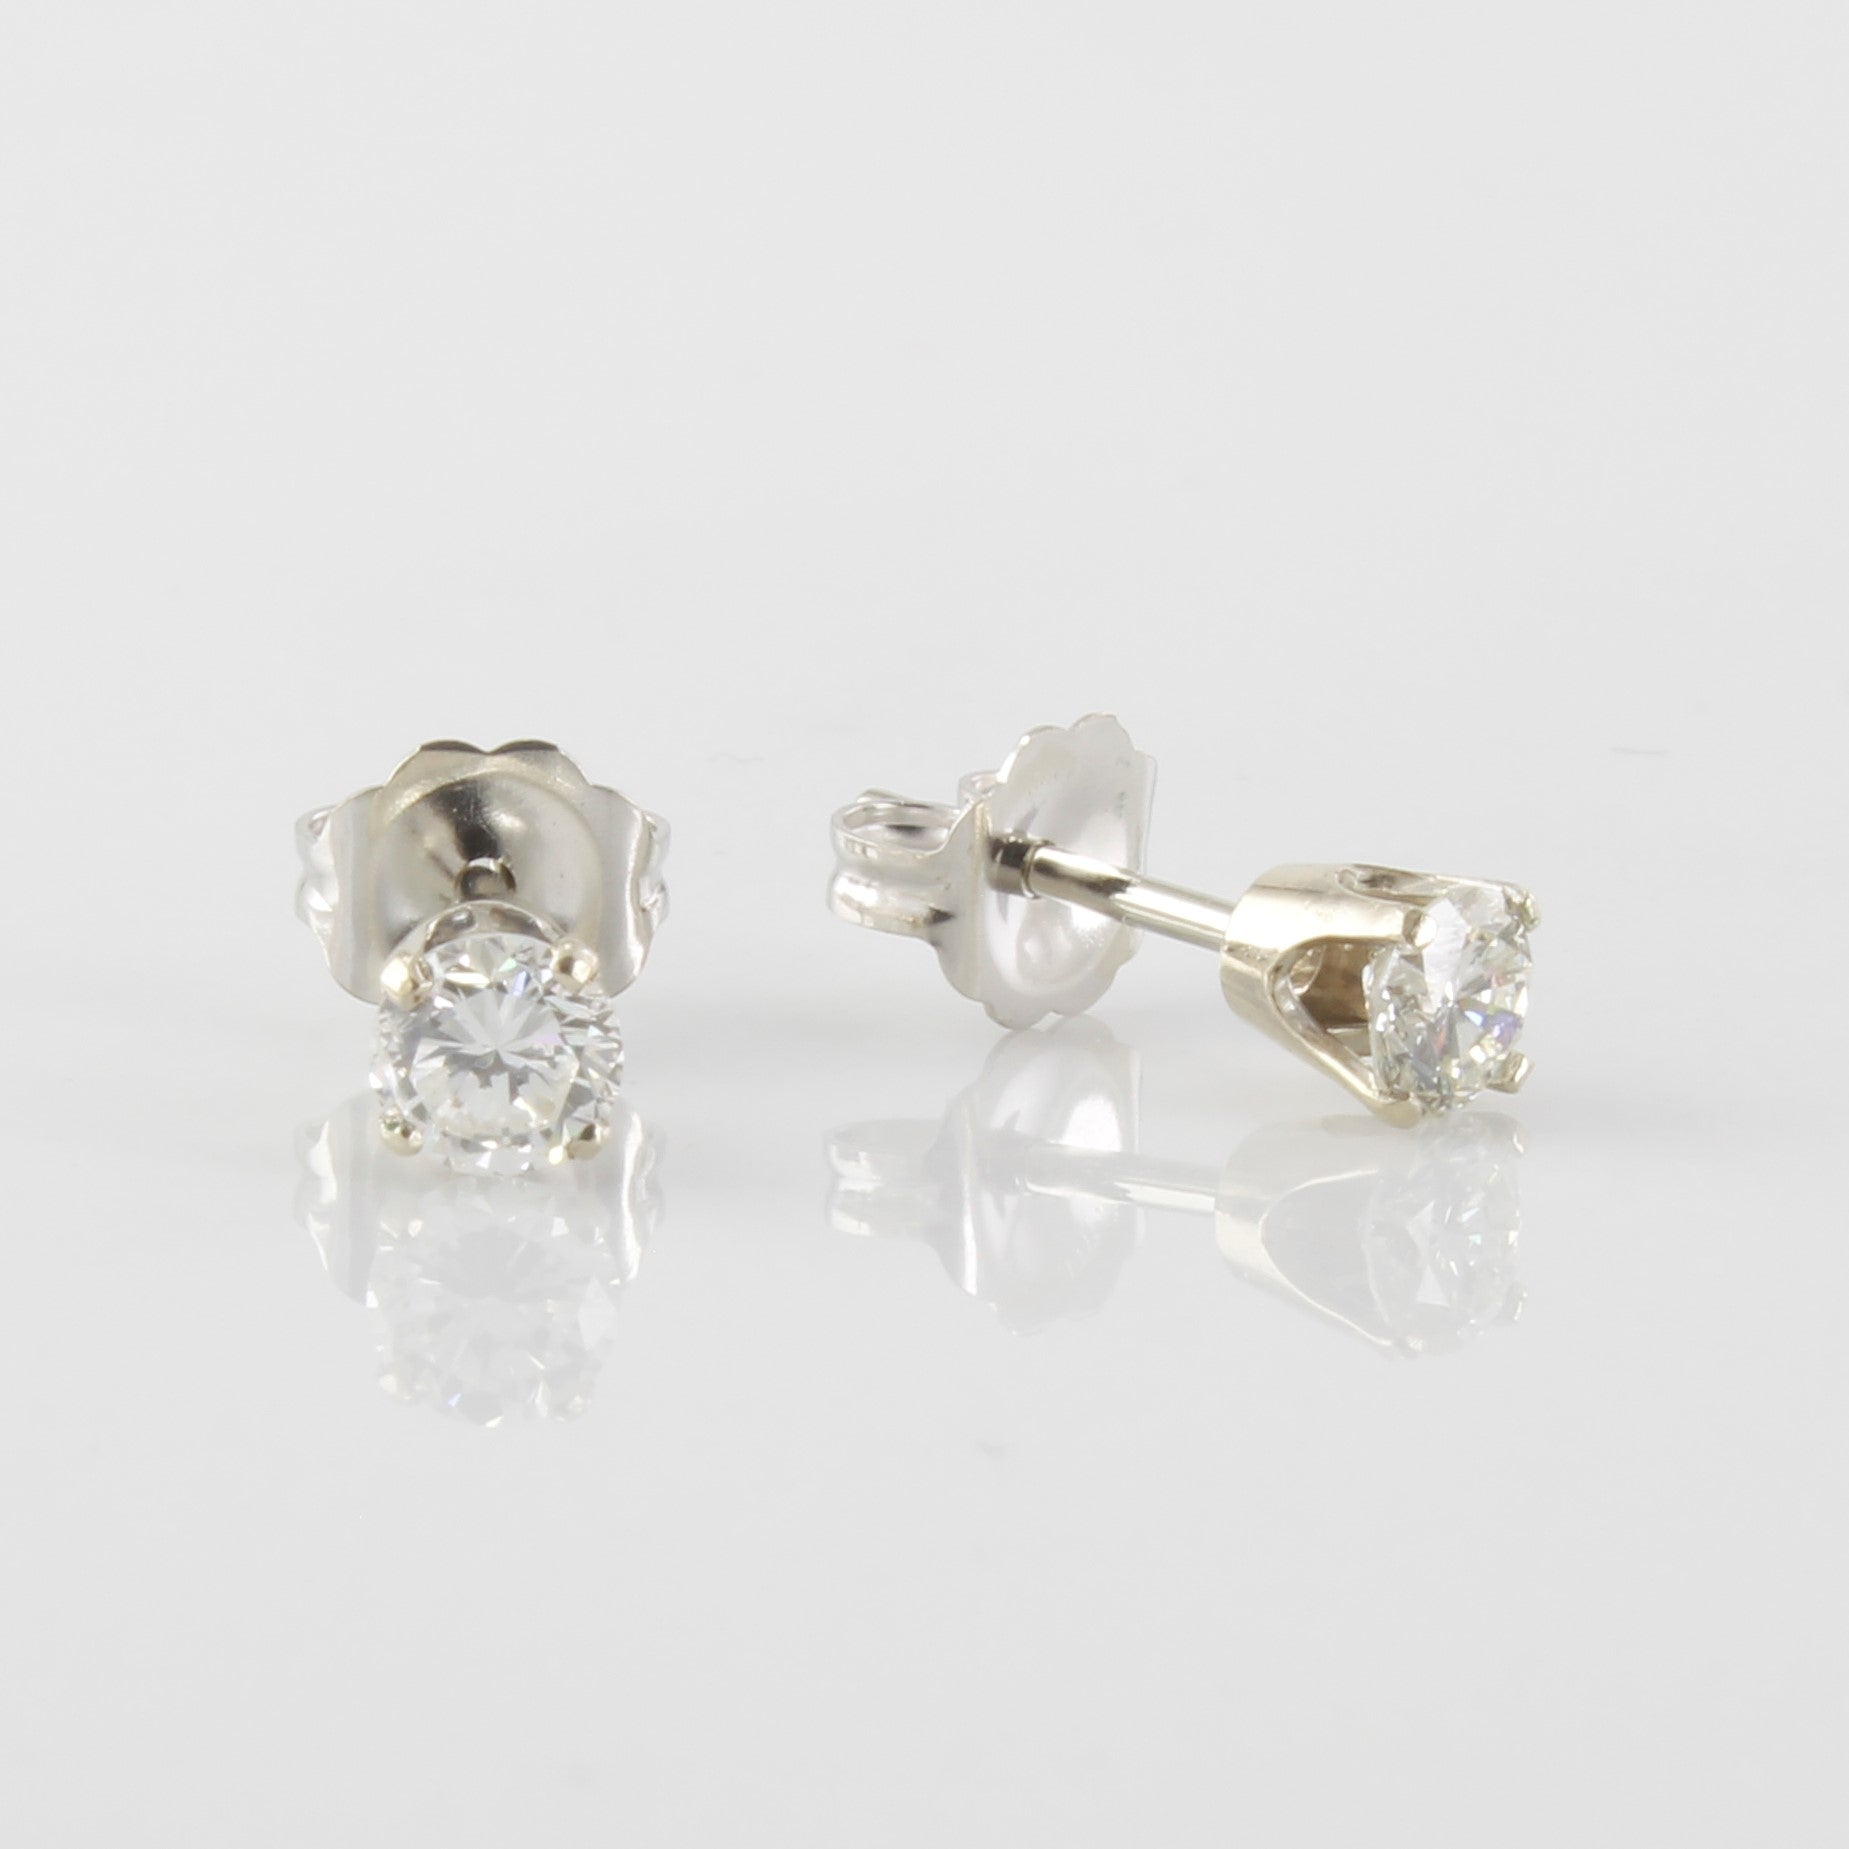 Diamond Solitaire Stud Earrings | 0.44ctw |